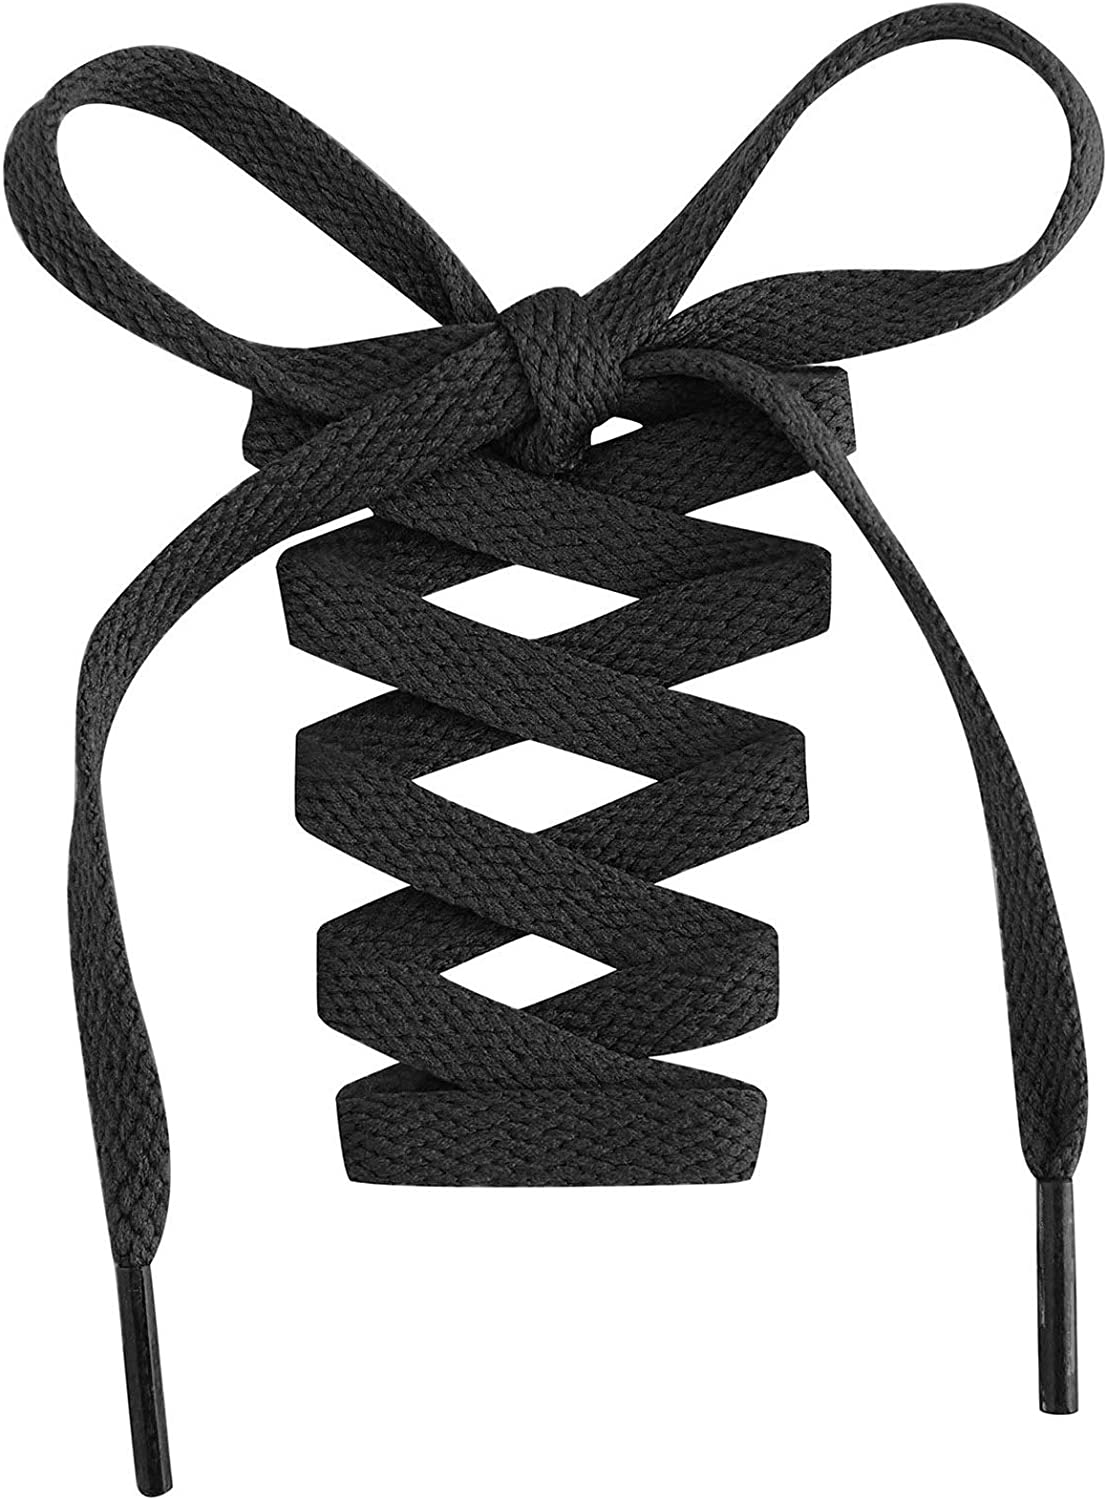 """Handshop Flat Shoelaces 5/16"""" - 20 Colors in 36""""-72"""" Shoe Laces For Sneakers : Clothing, Shoes & Jewelry"""